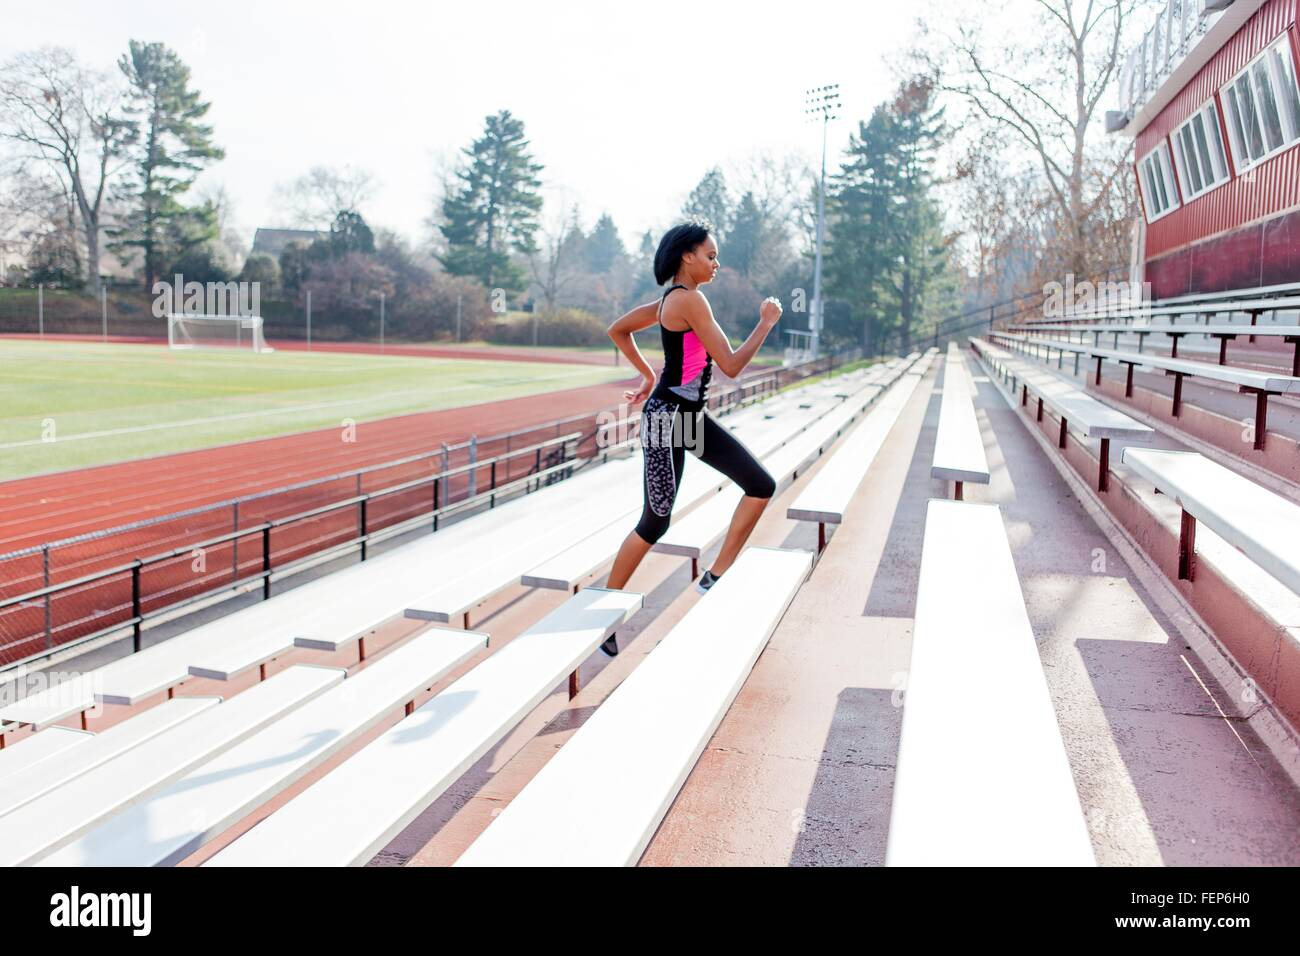 Young woman running up steps at sports track - Stock Image